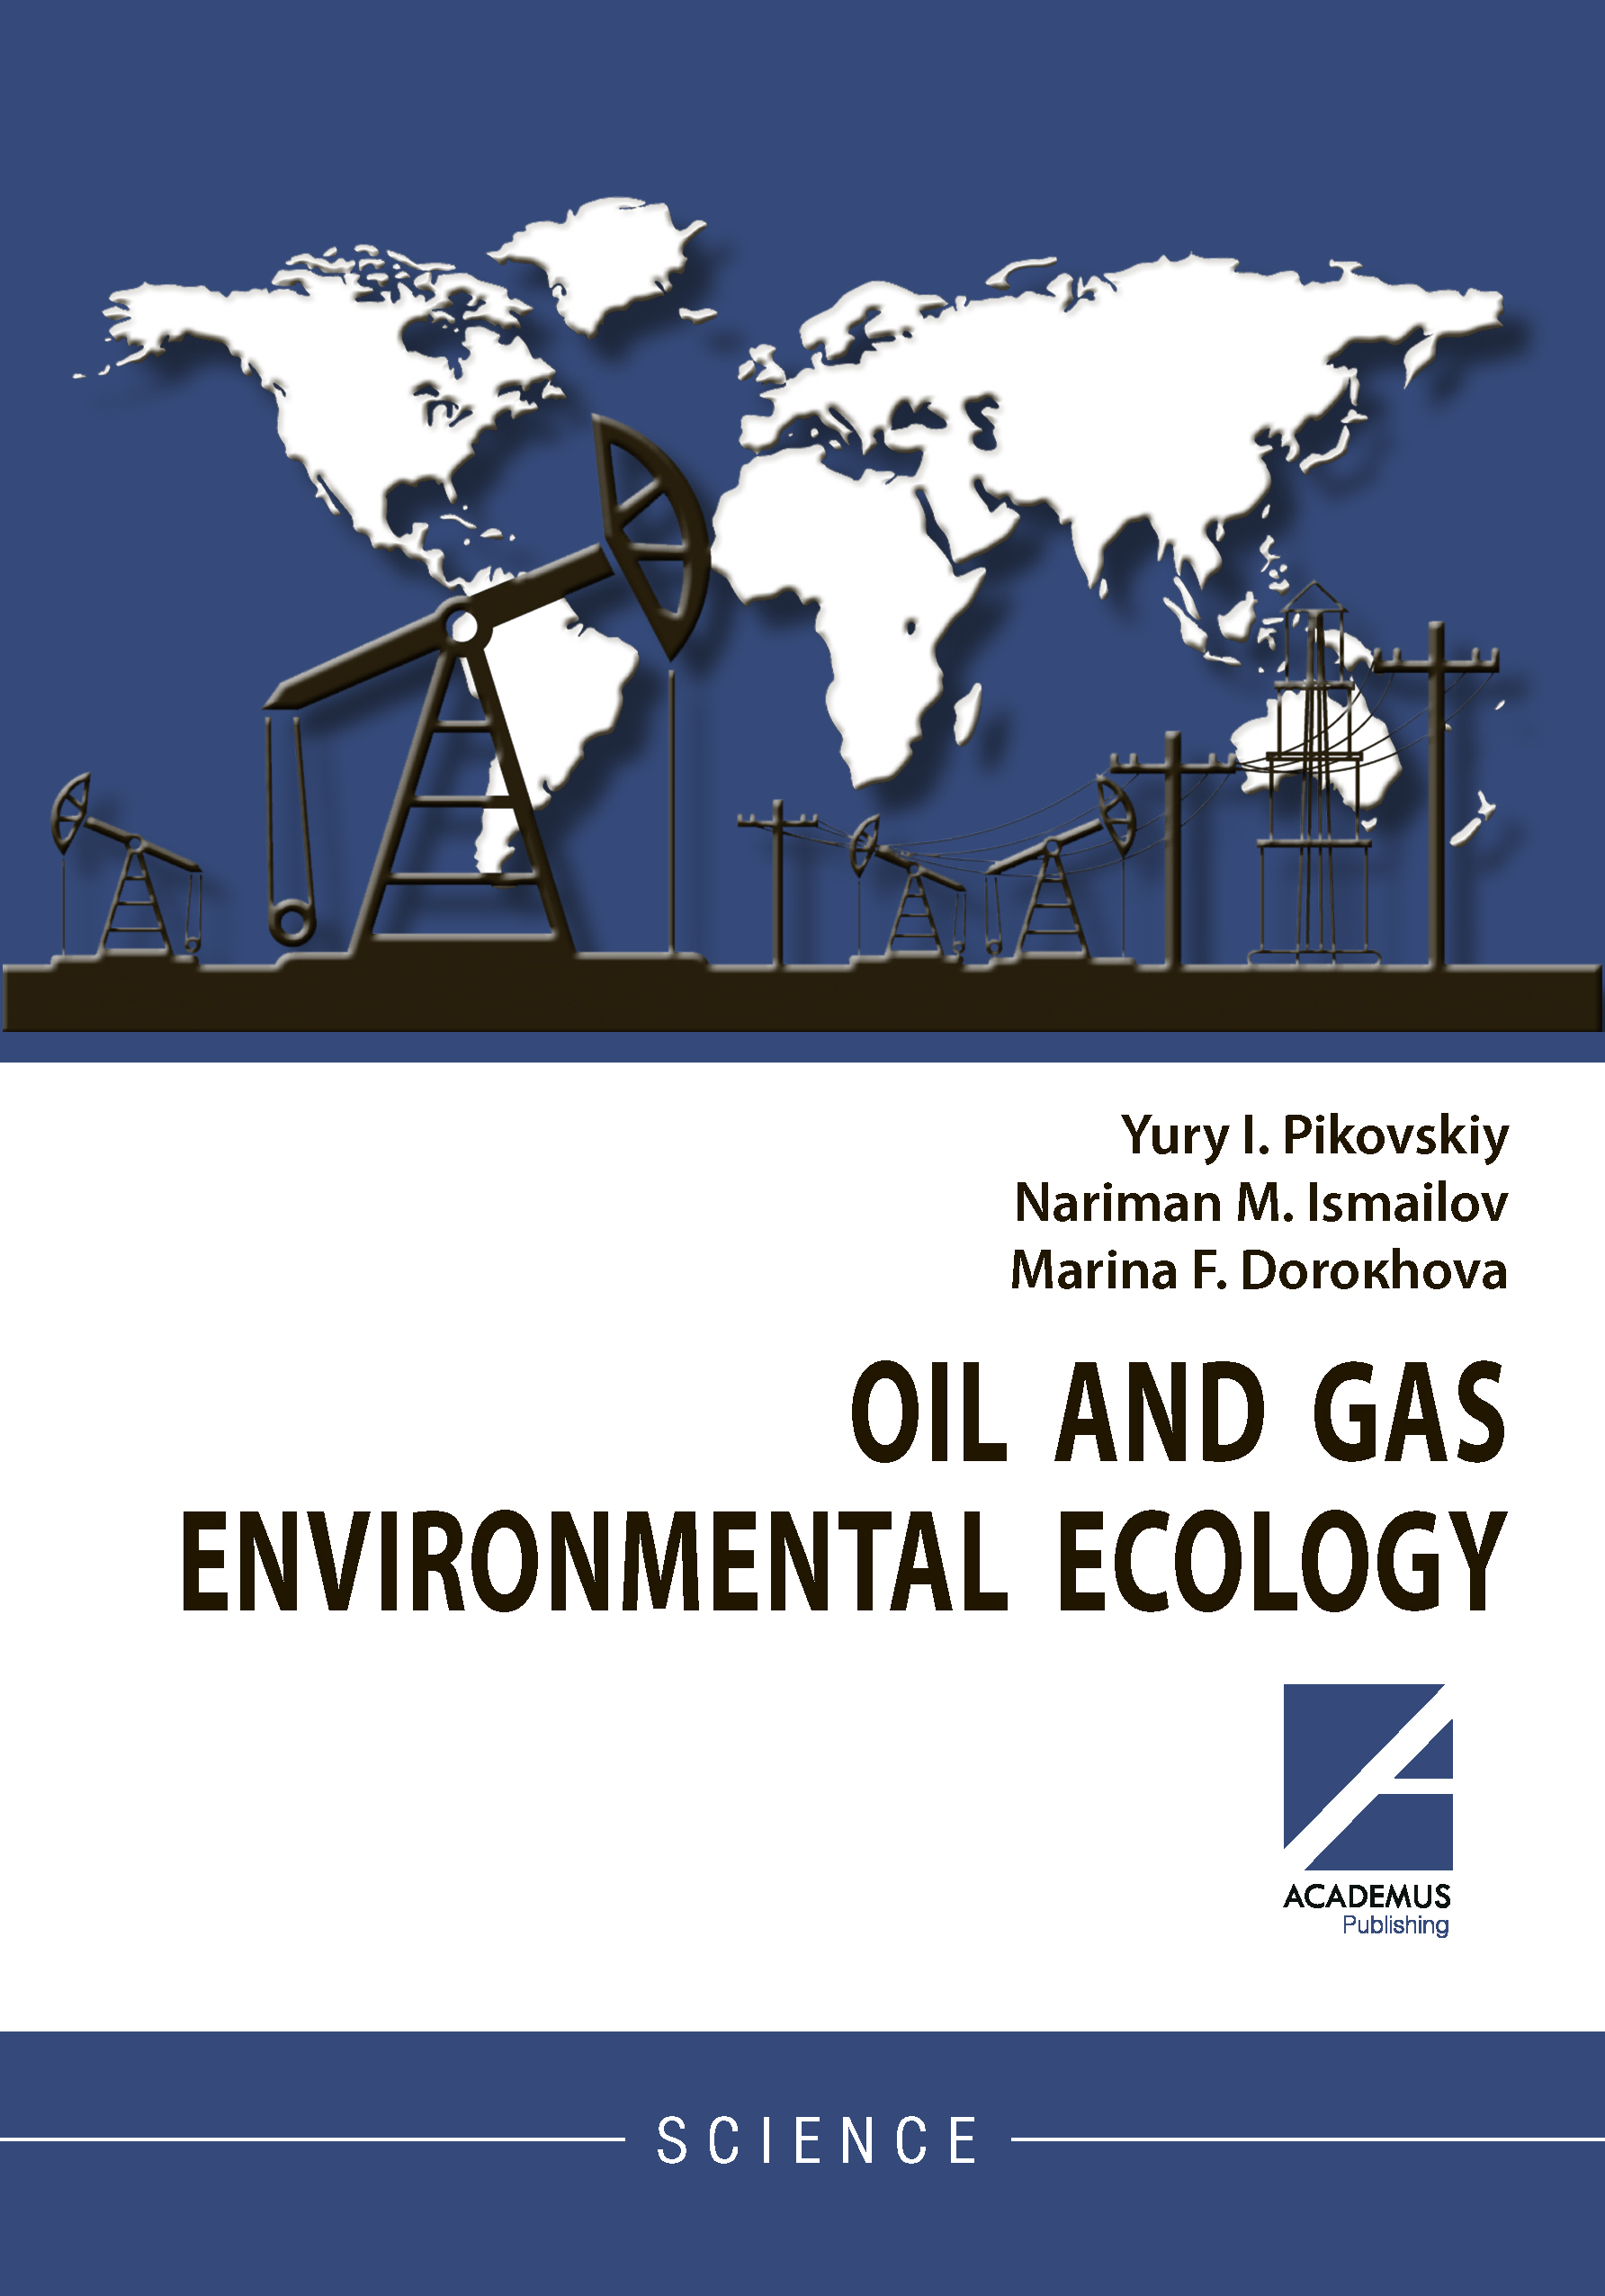 OIL AND GAS ENVIRONMENTAL ECOLOGY